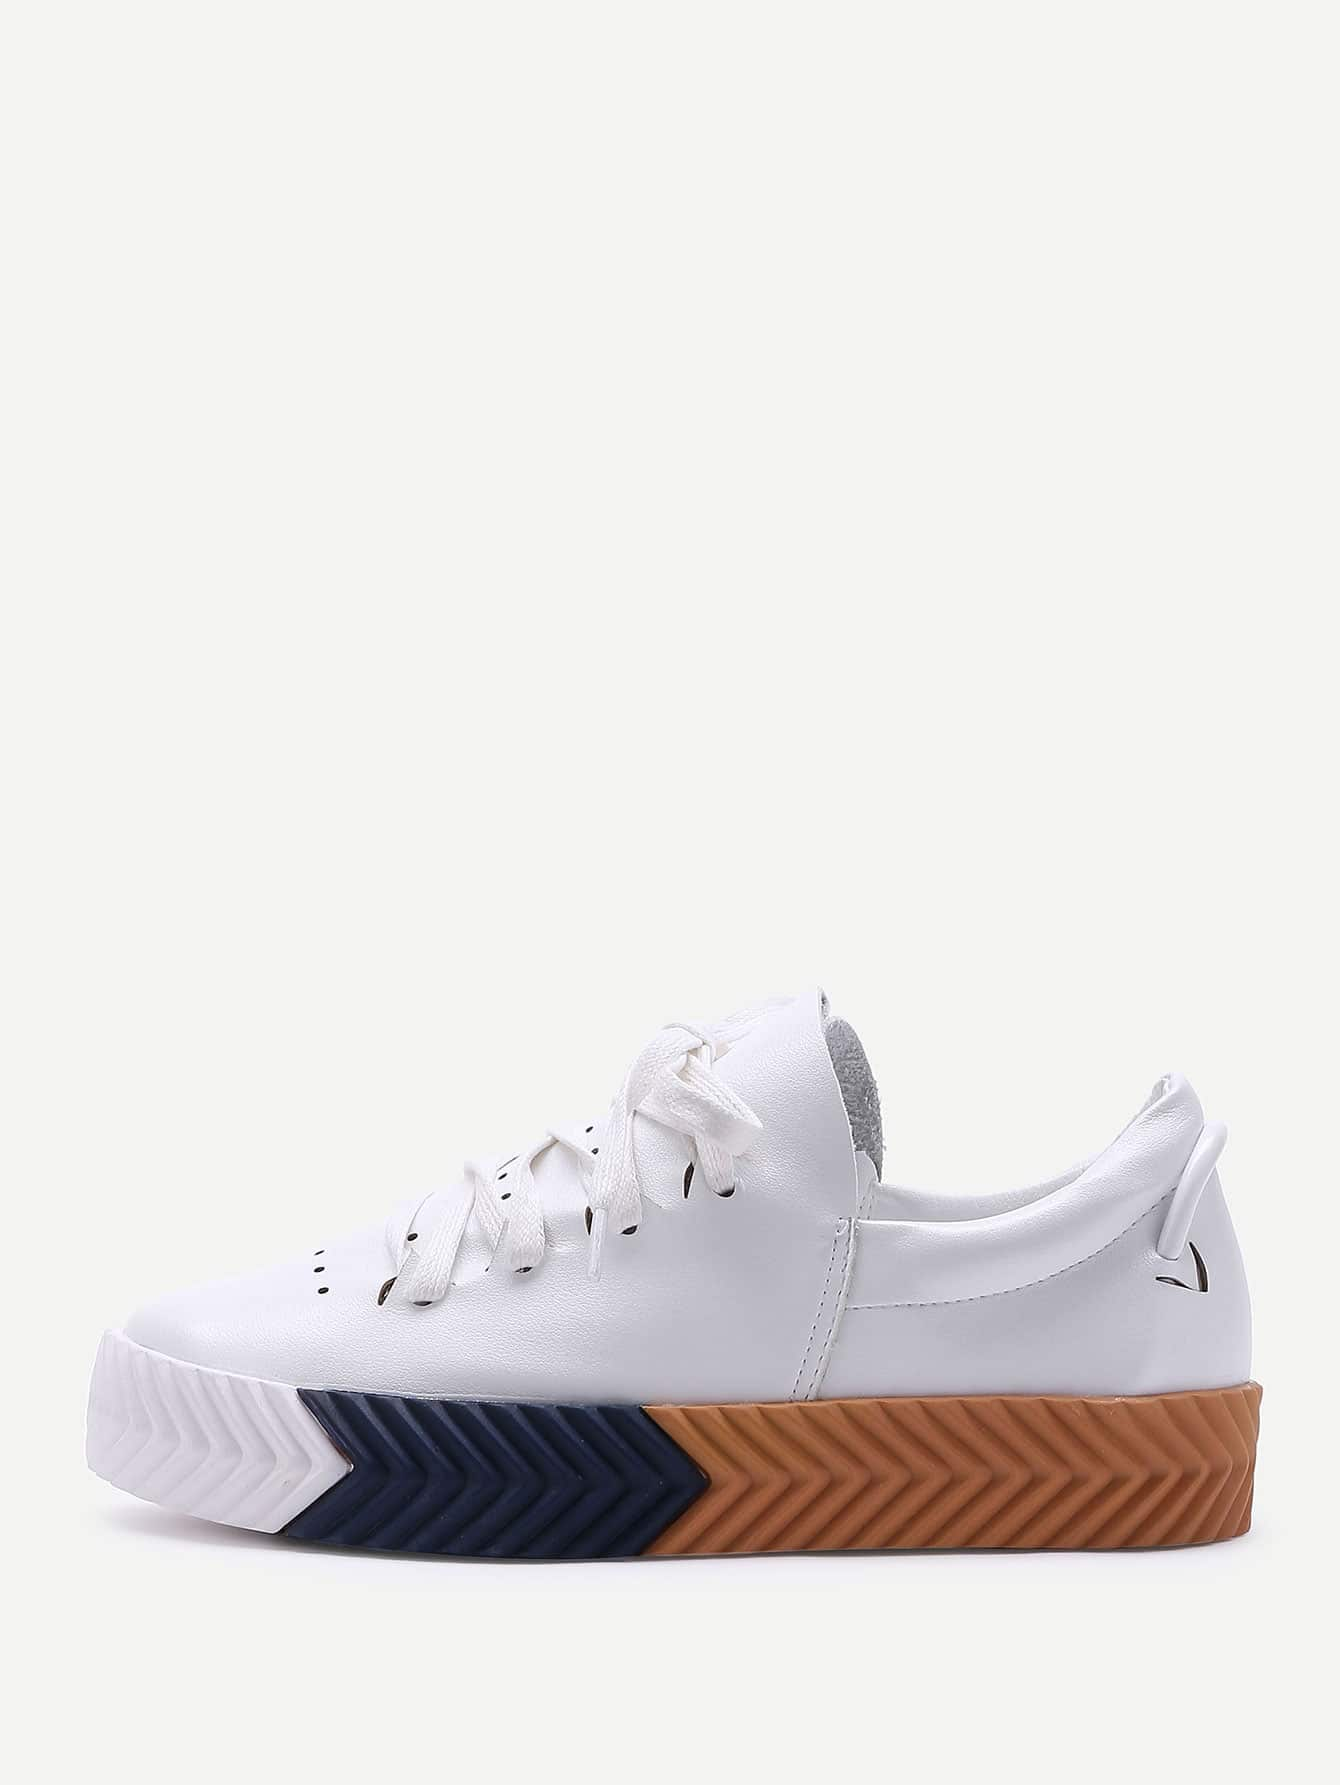 Lace Up PU Platform Sneakers shoes170602803